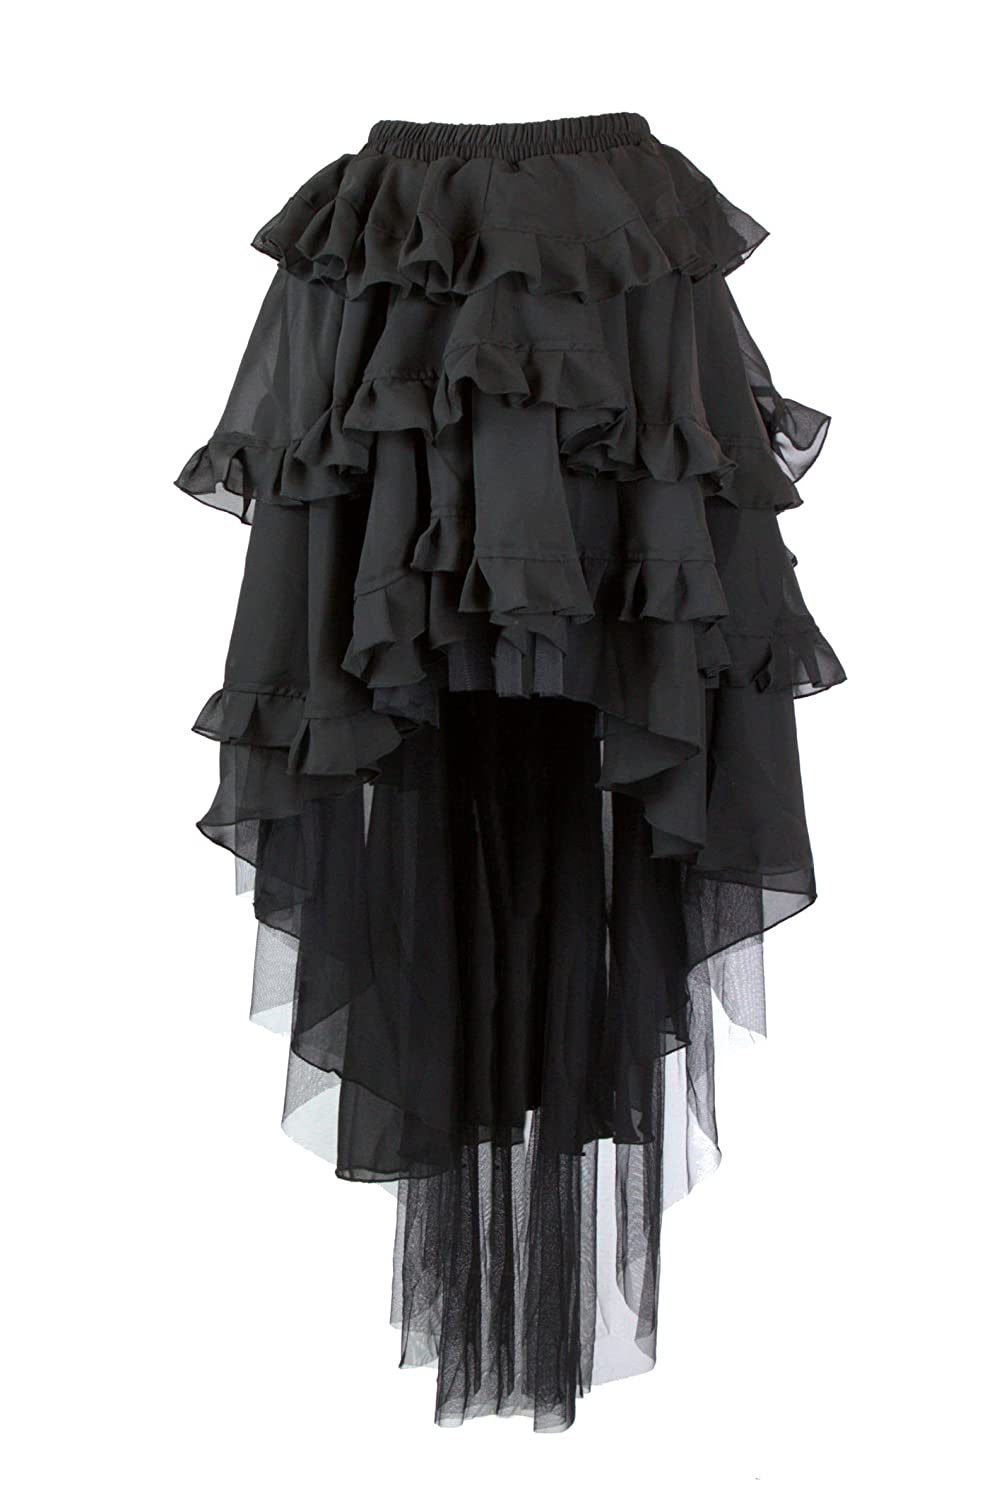 Steampunk Dresses | Women & Girl Costumes Black Steampunk Ophelie Skirt $86.99 AT vintagedancer.com